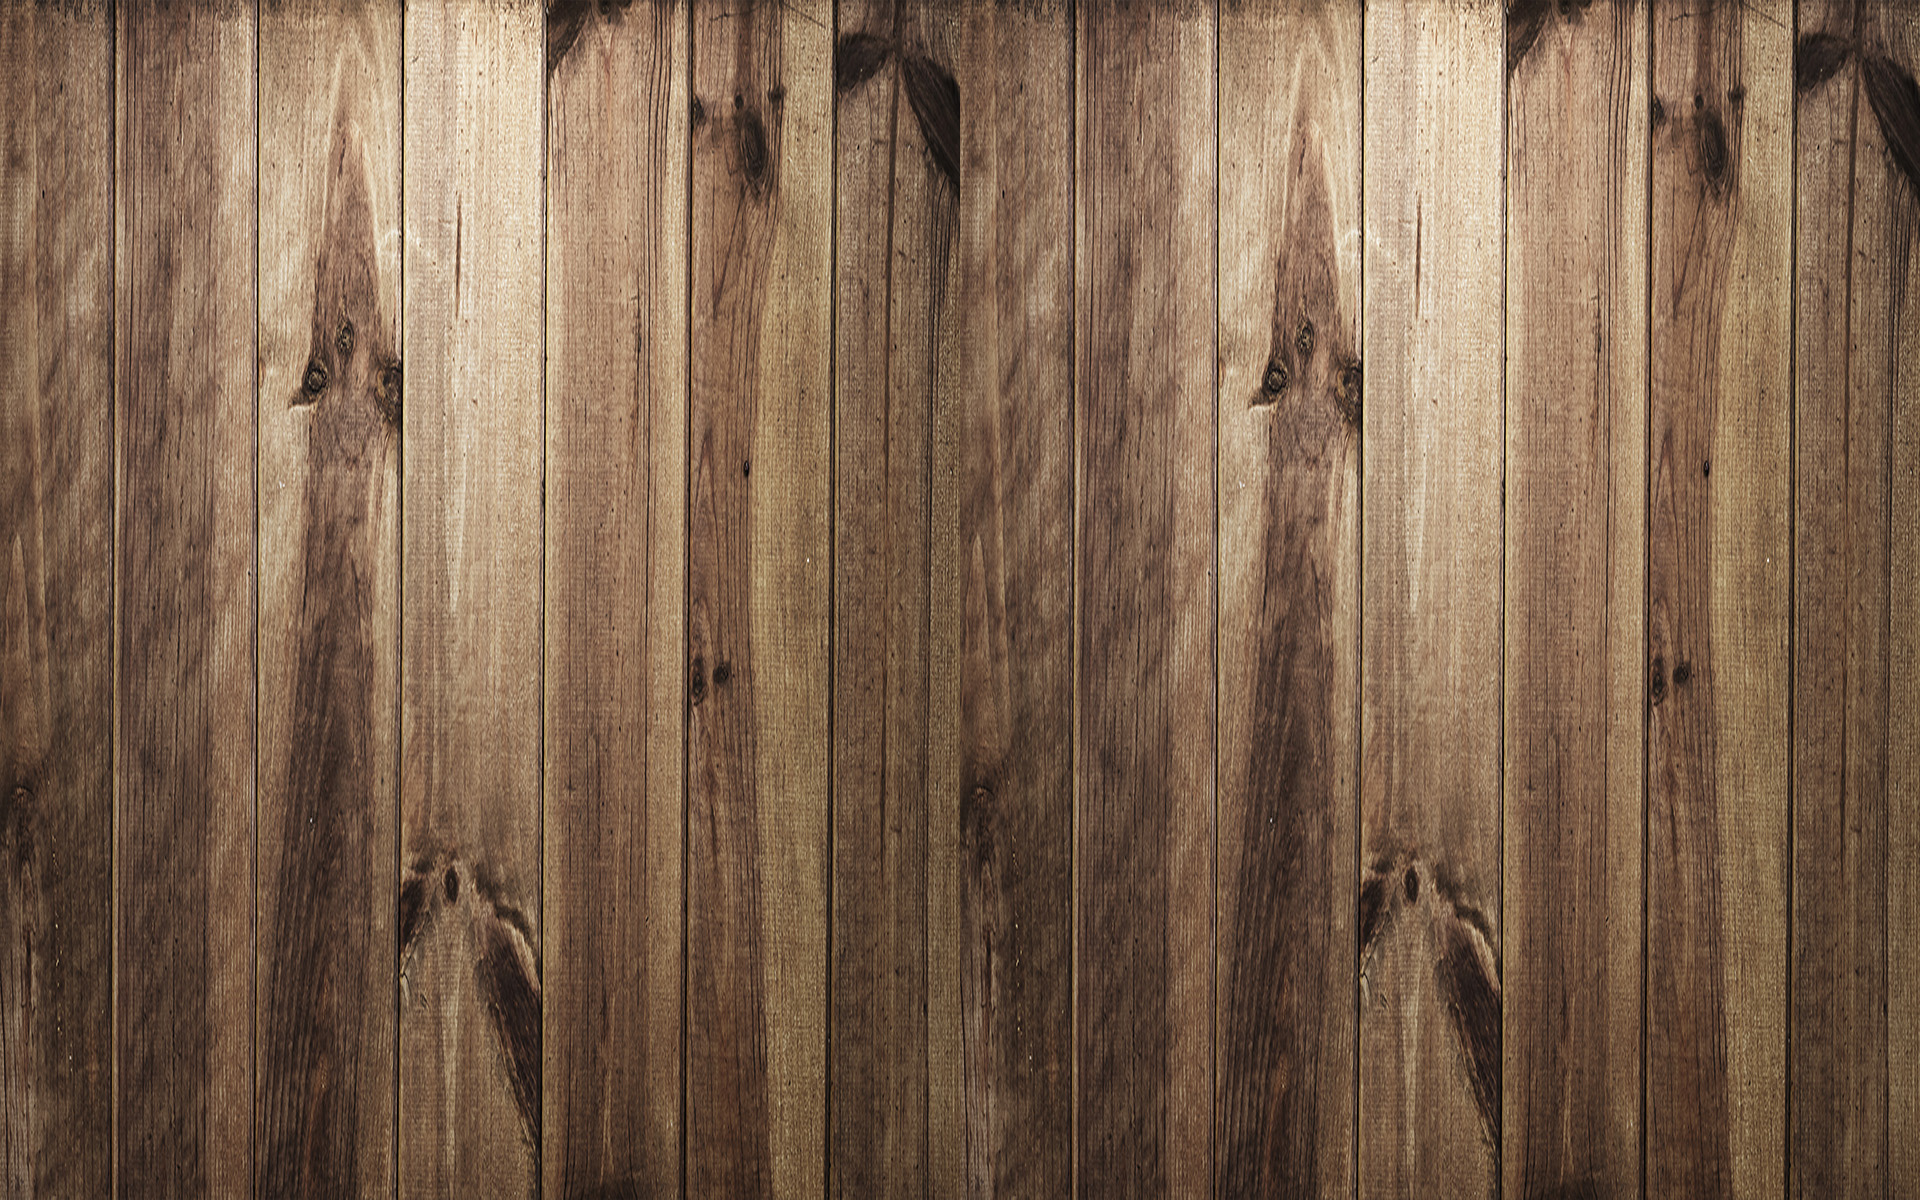 wood_texture_01